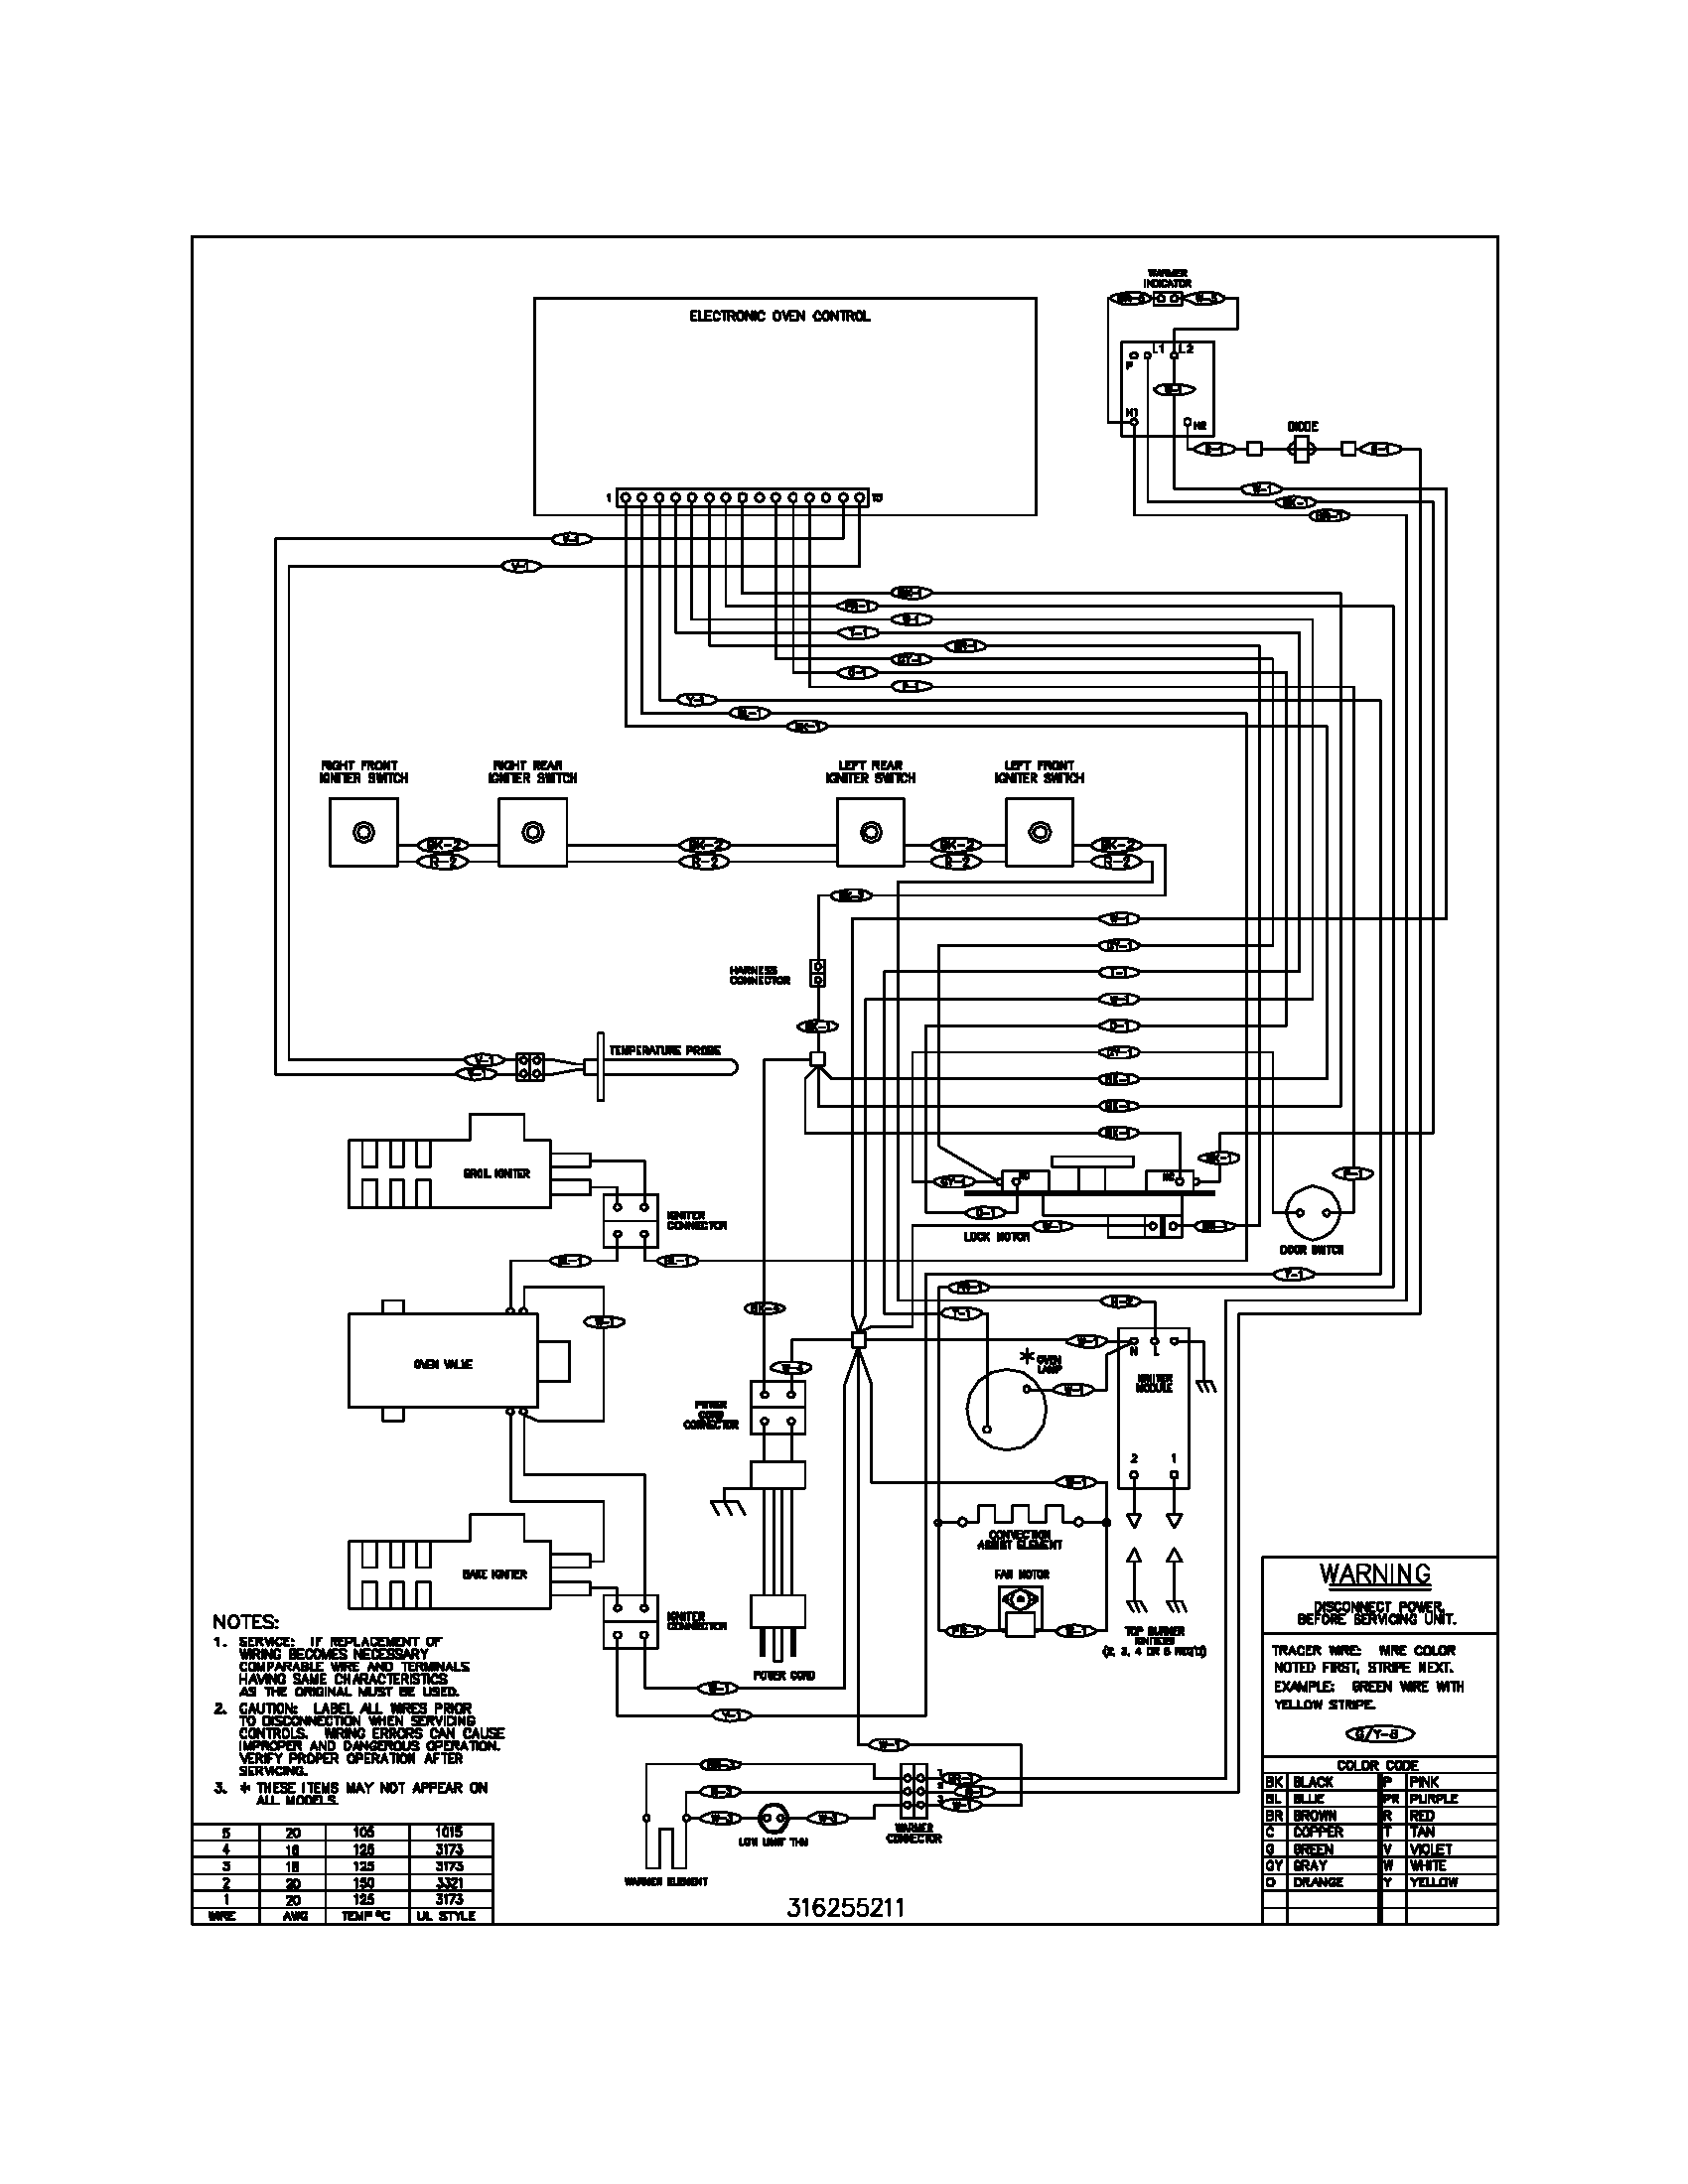 wiring diagram parts whirlpool gas range wiring schematics wiring diagram simonand ge profile microwave wiring diagram at creativeand.co